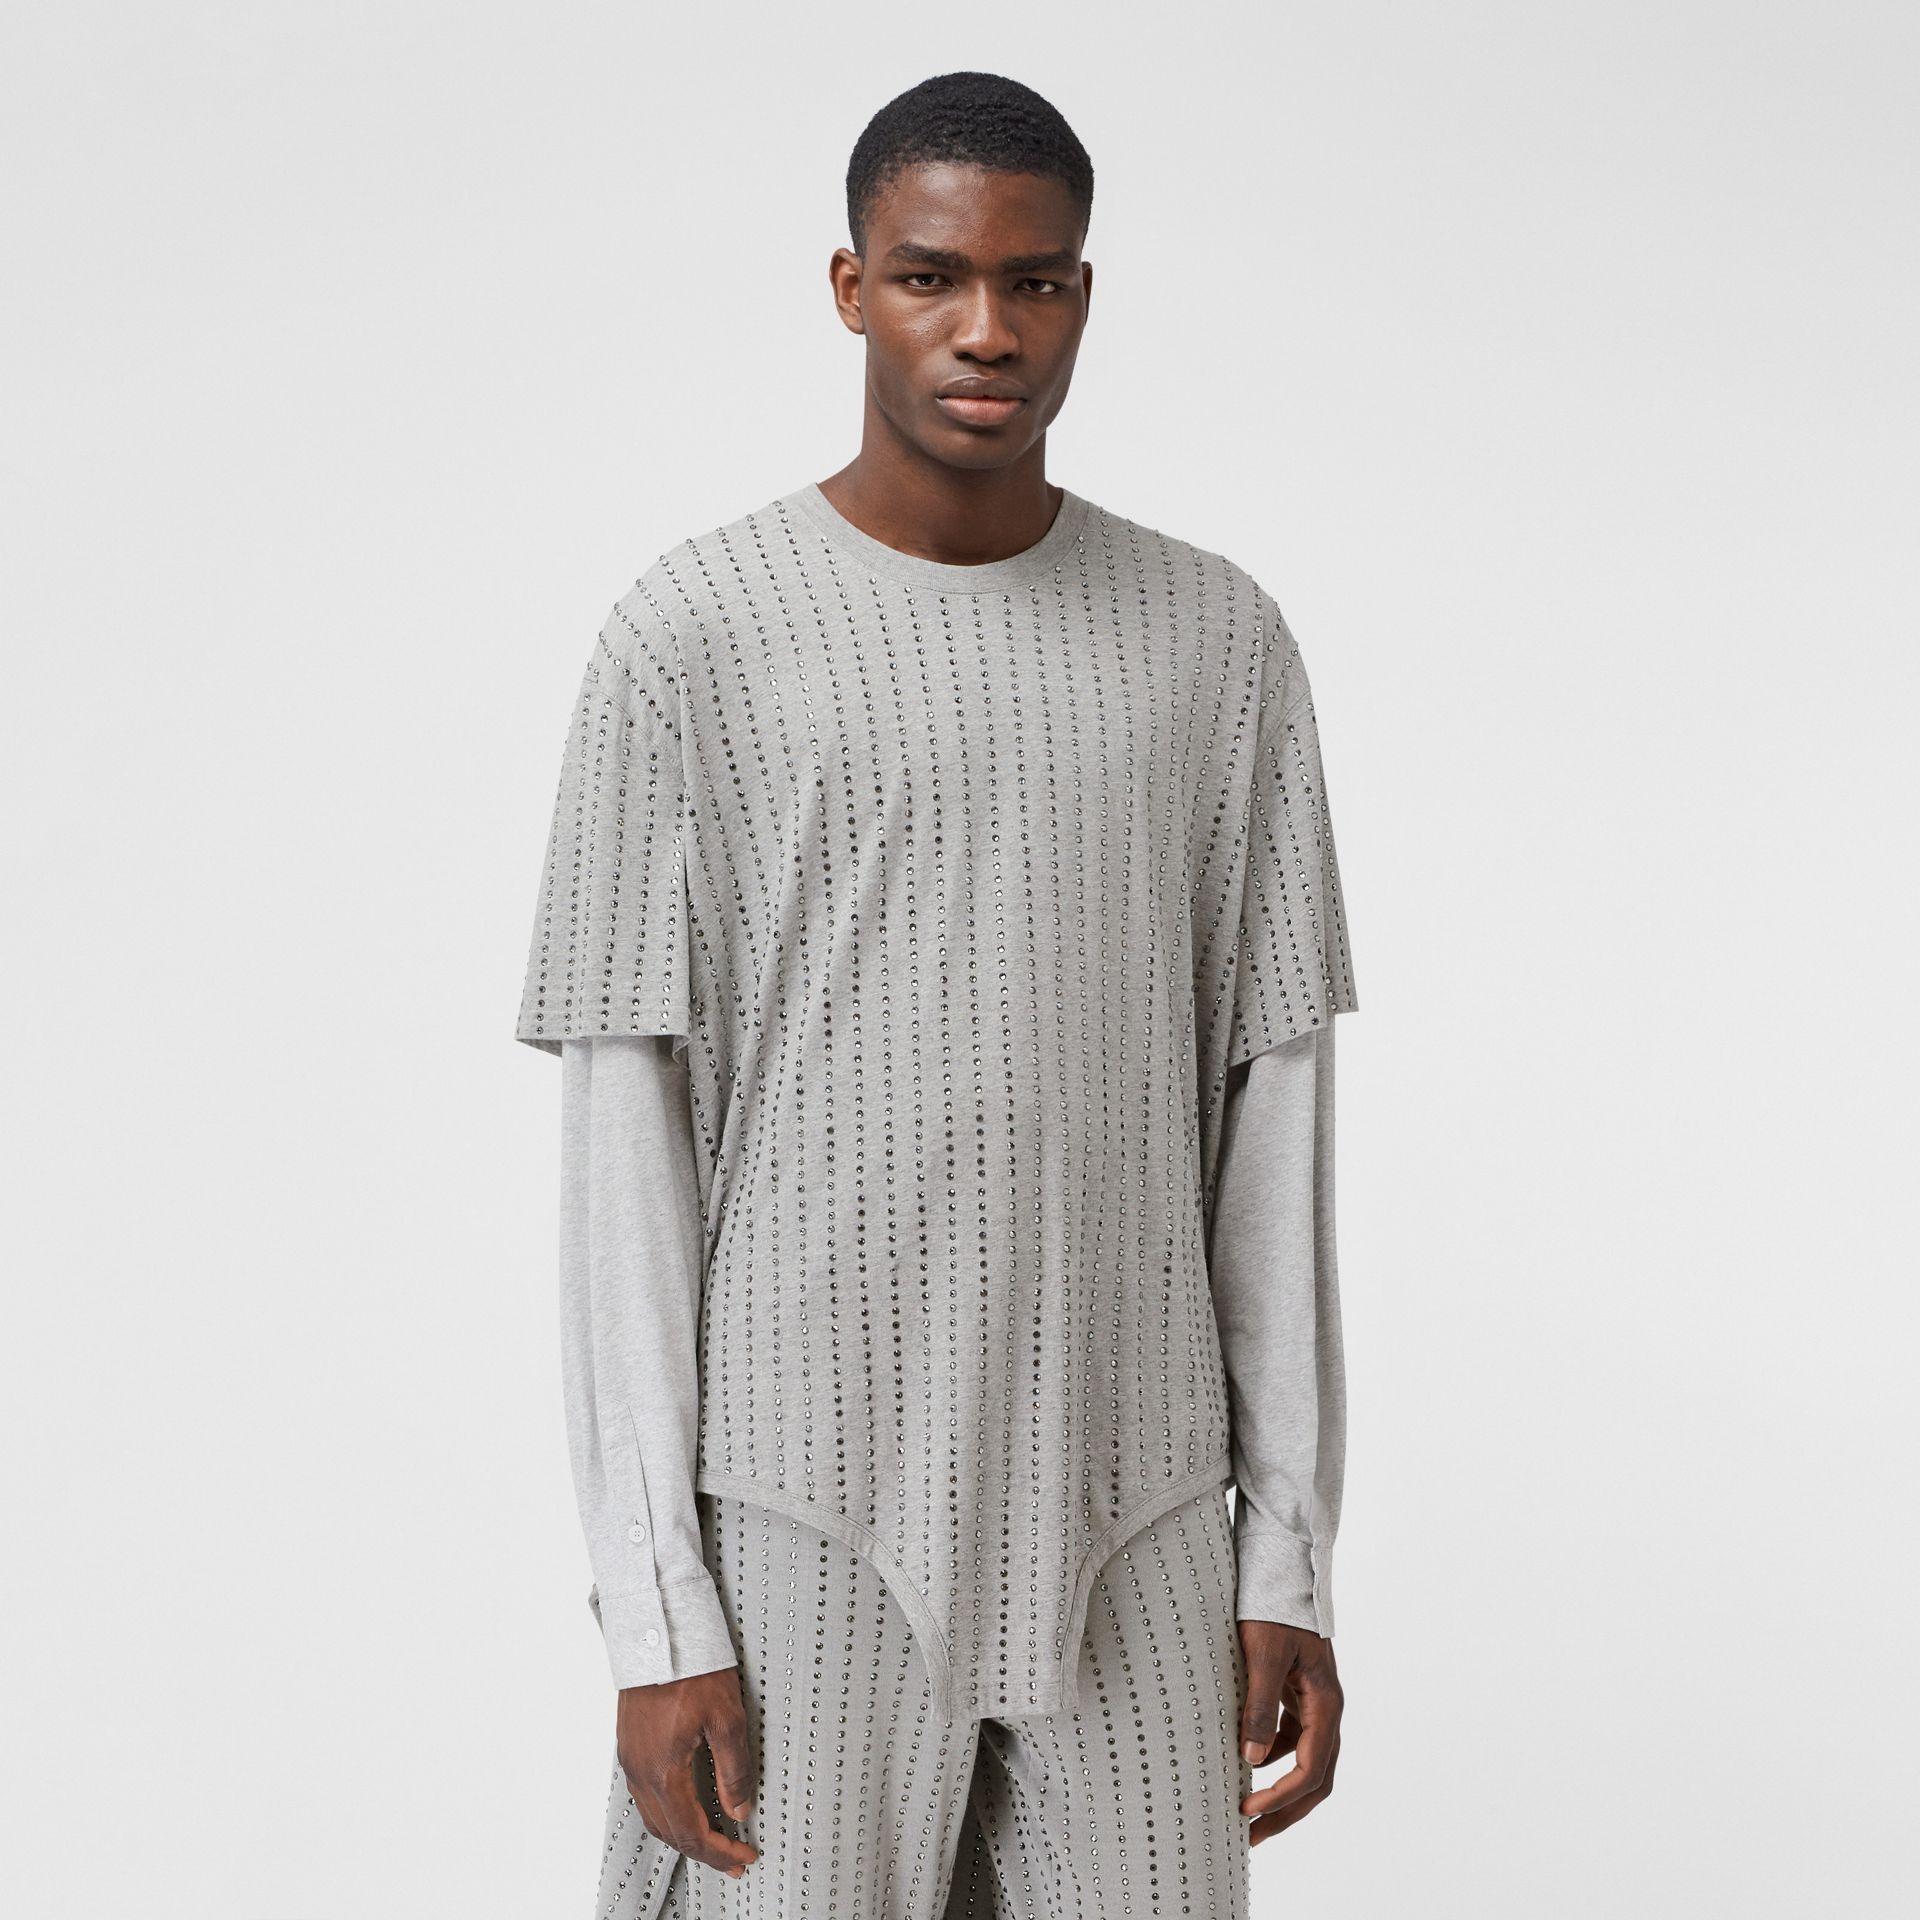 Cut-out Hem Crystal Pinstriped Cotton Oversized T-shirt in Cloud Grey | Burberry - gallery image 0